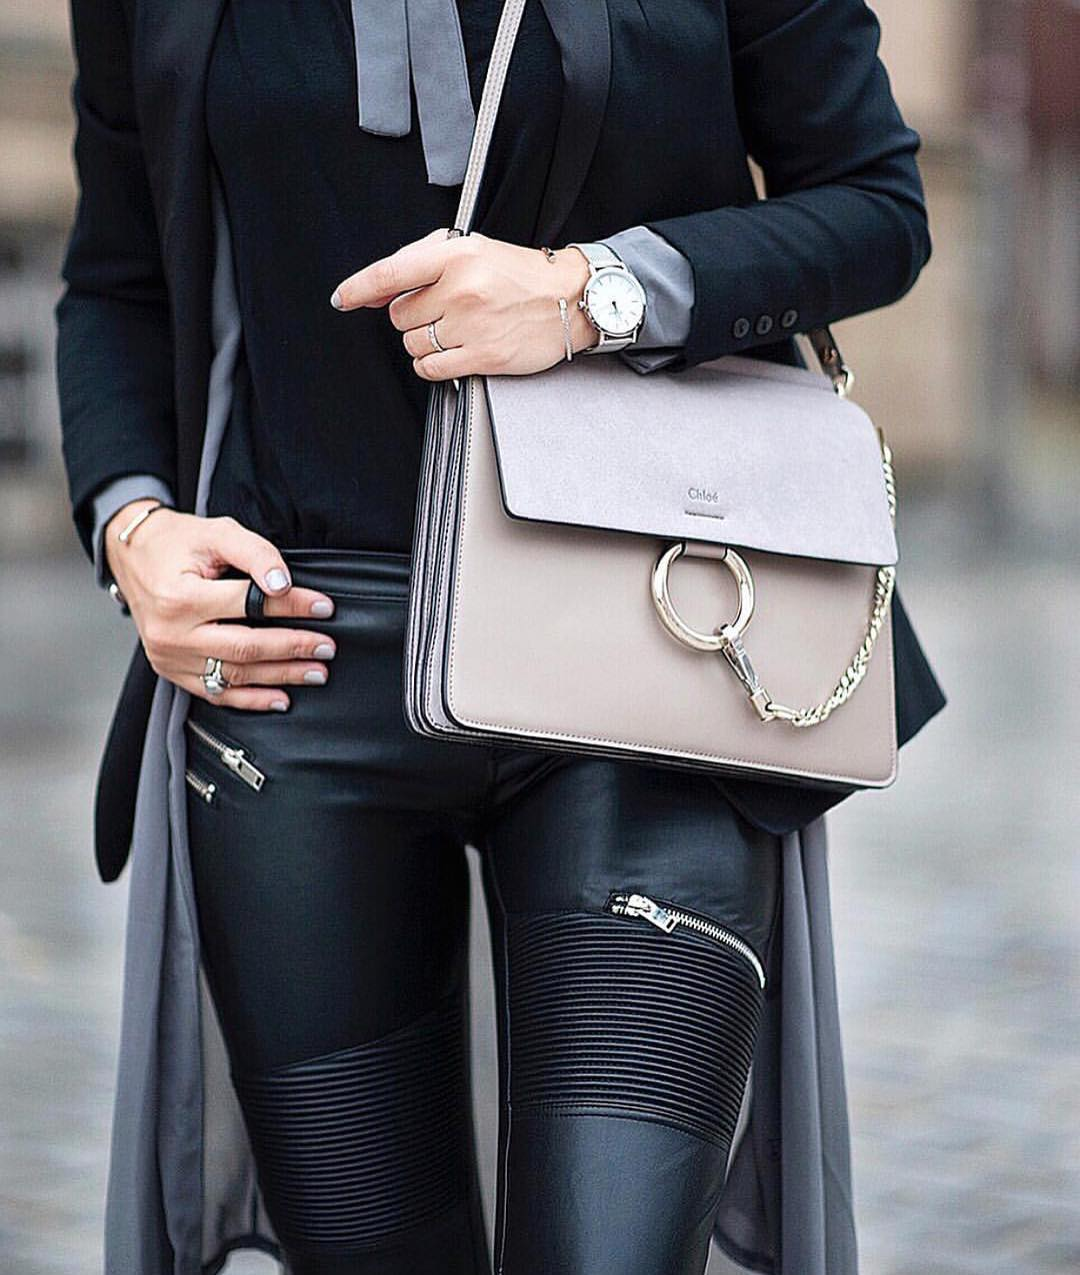 How To Wear Black Leather Biker Pants With Zip-Closures 2021